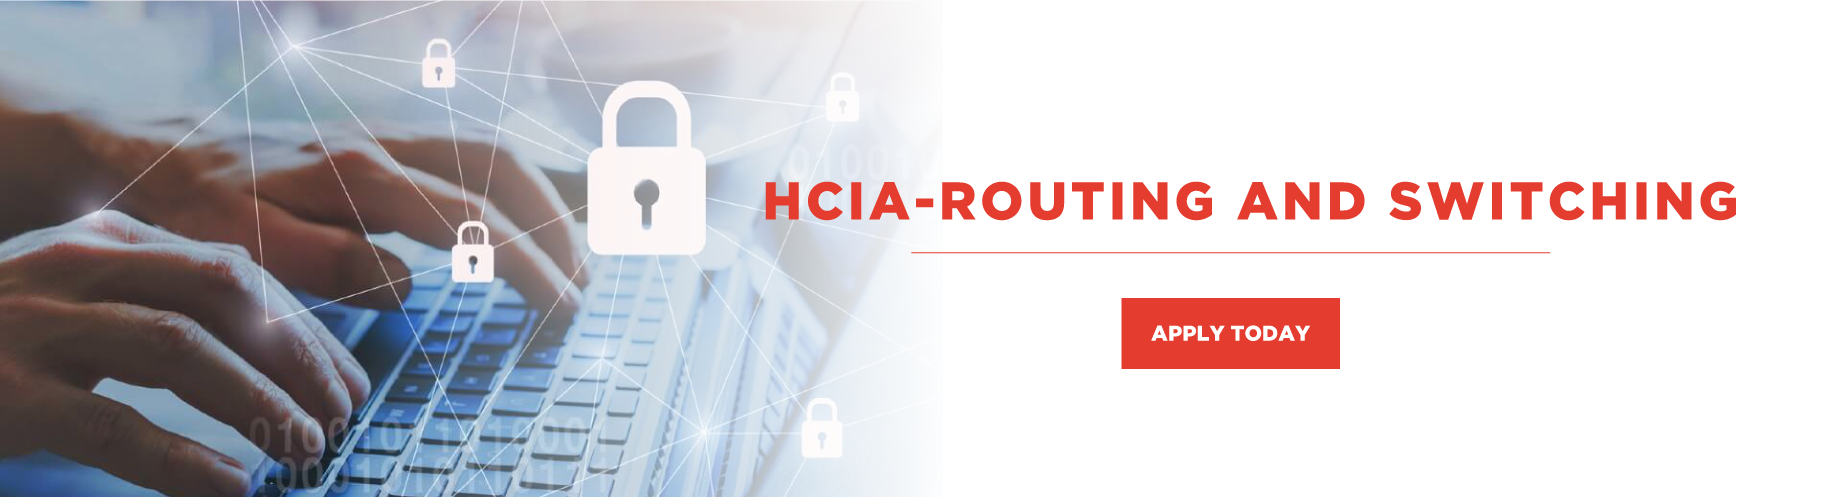 HCIA-Routing-and-switching-web_banner